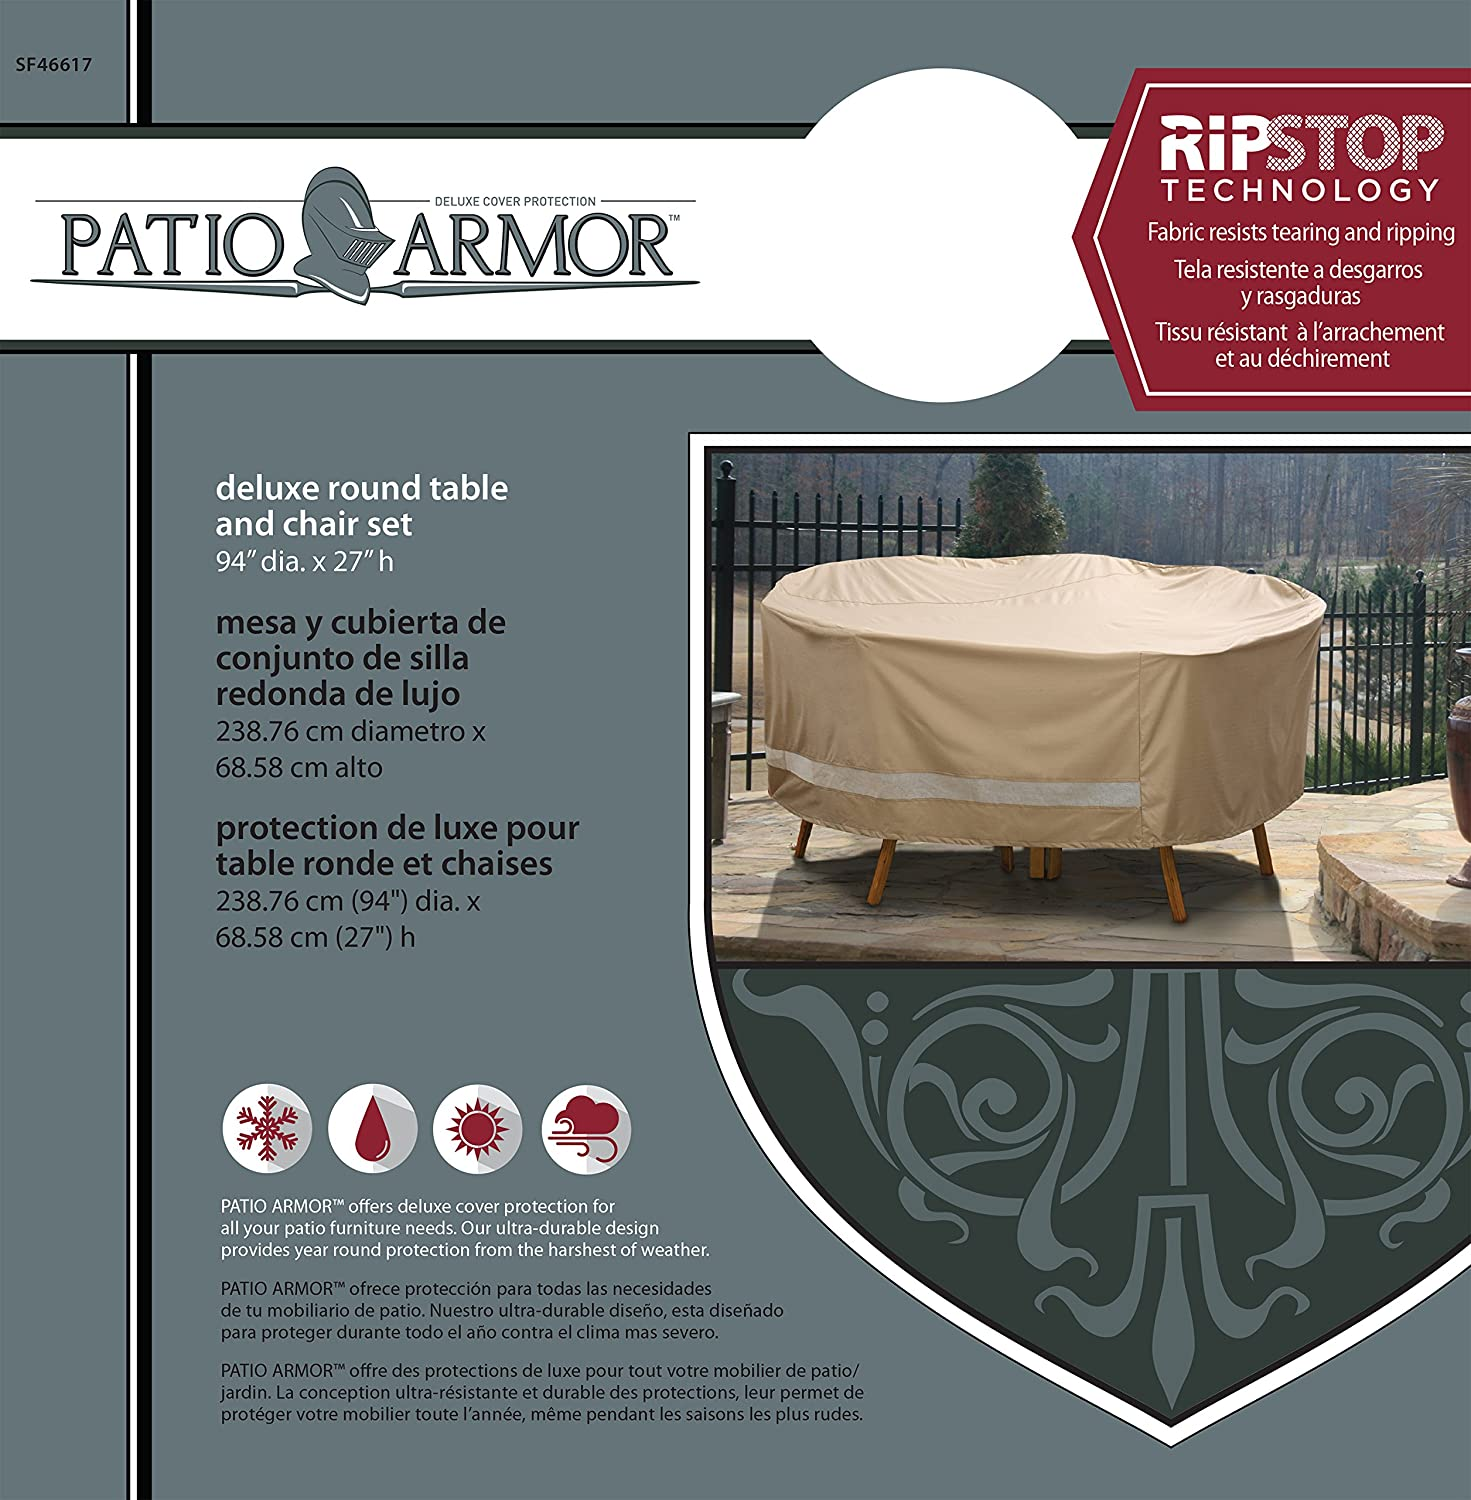 Amazon.com : Sure Fit Patio Armour Ripstop Deluxe Round ...